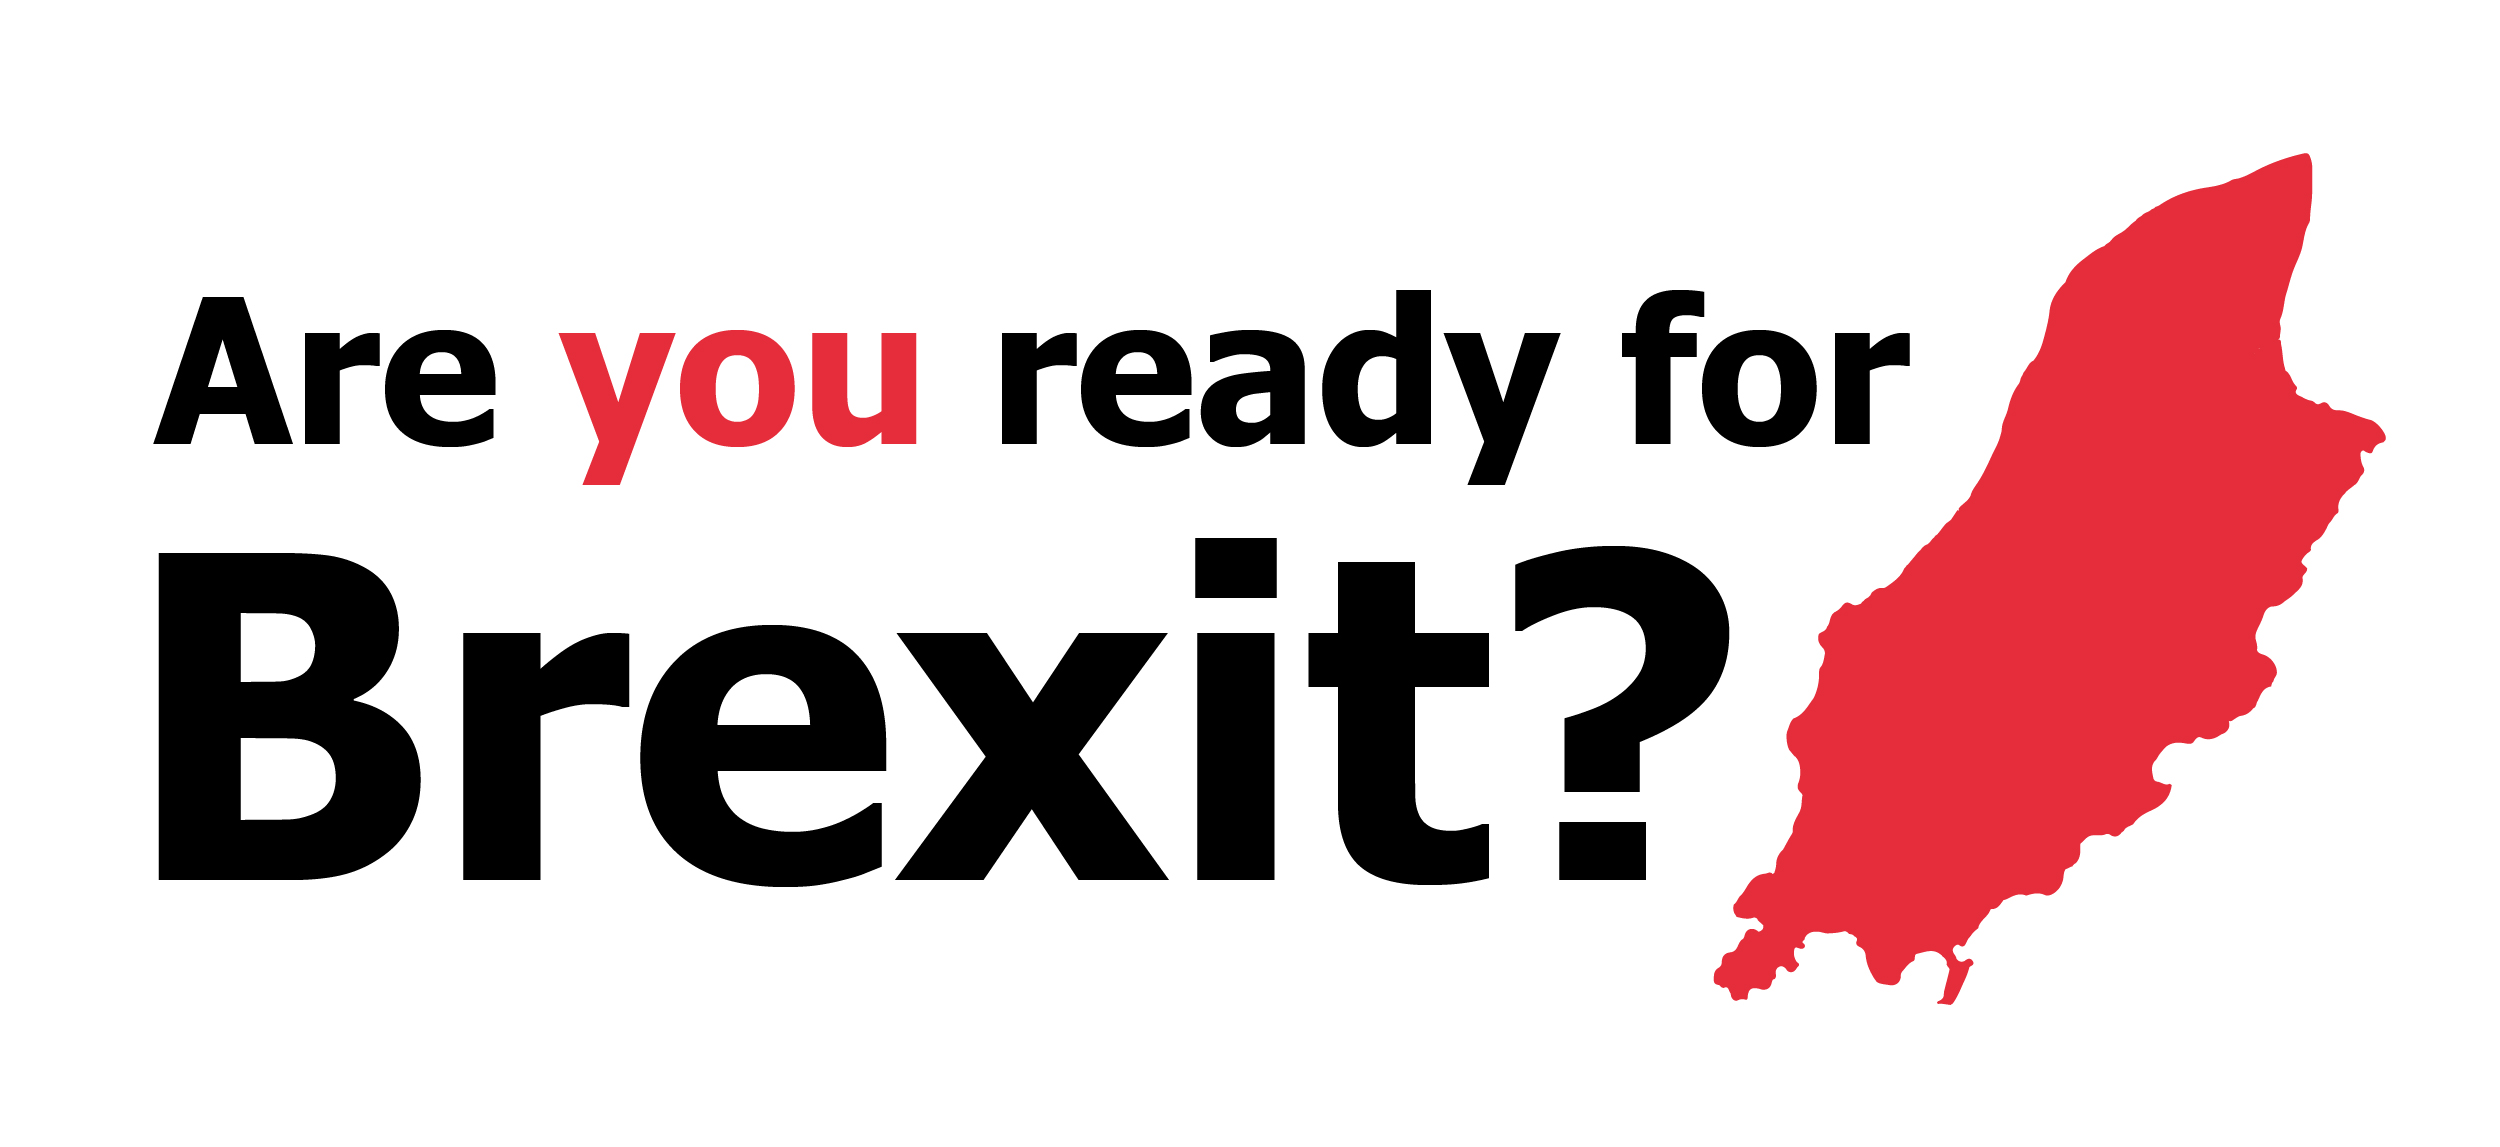 Are You Ready For Brexit